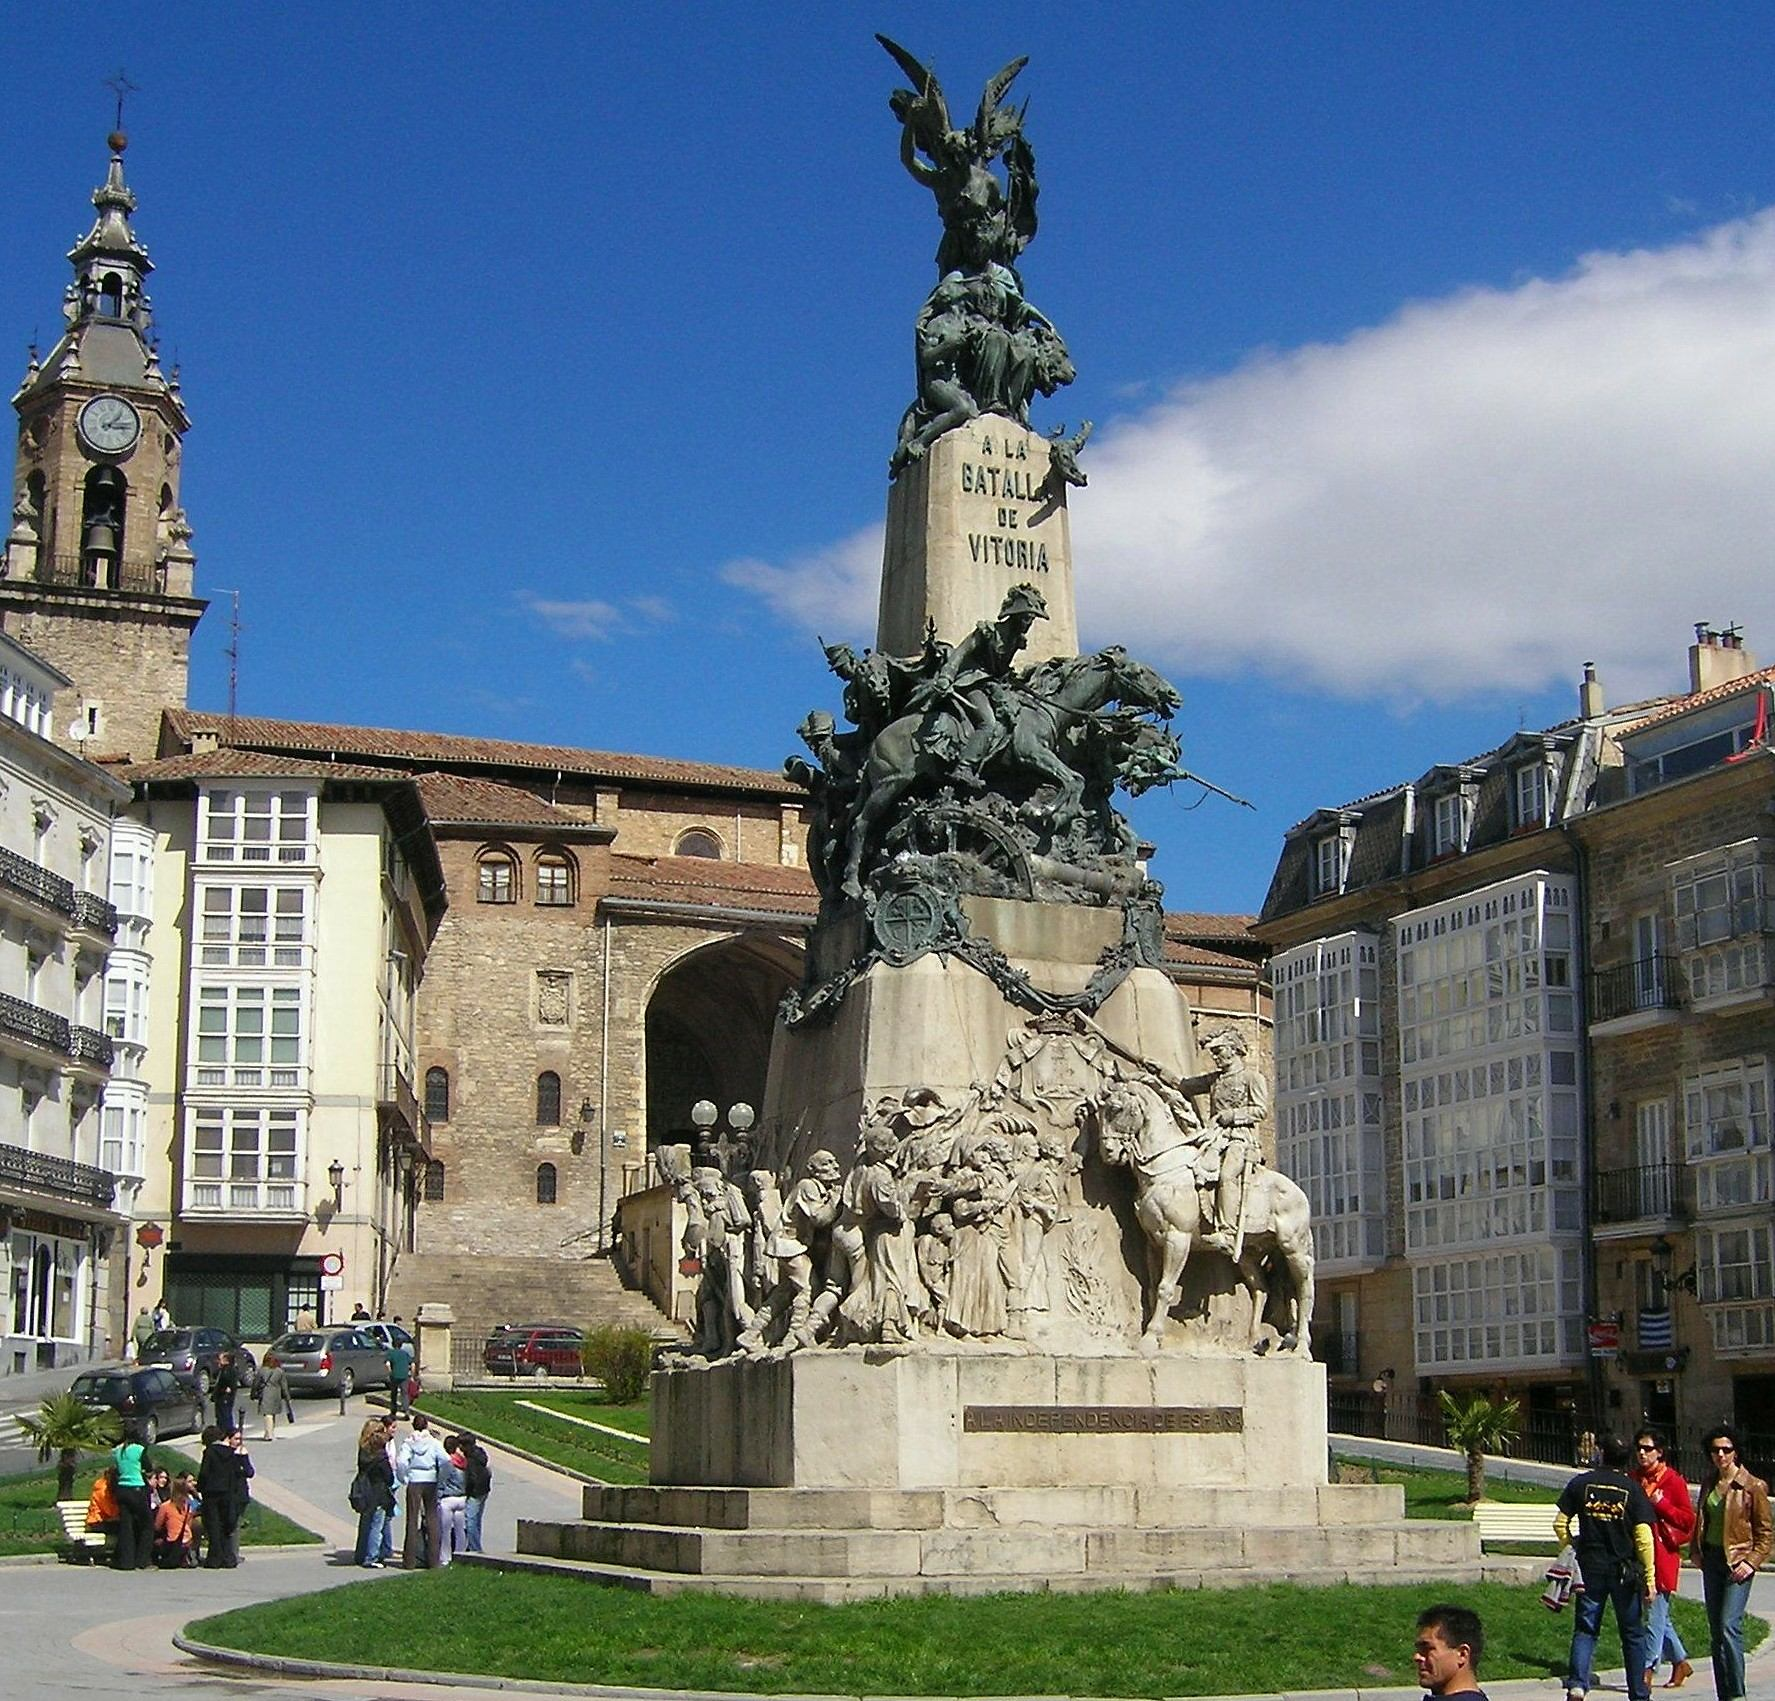 Vitoria File:Vitoria -Monument...